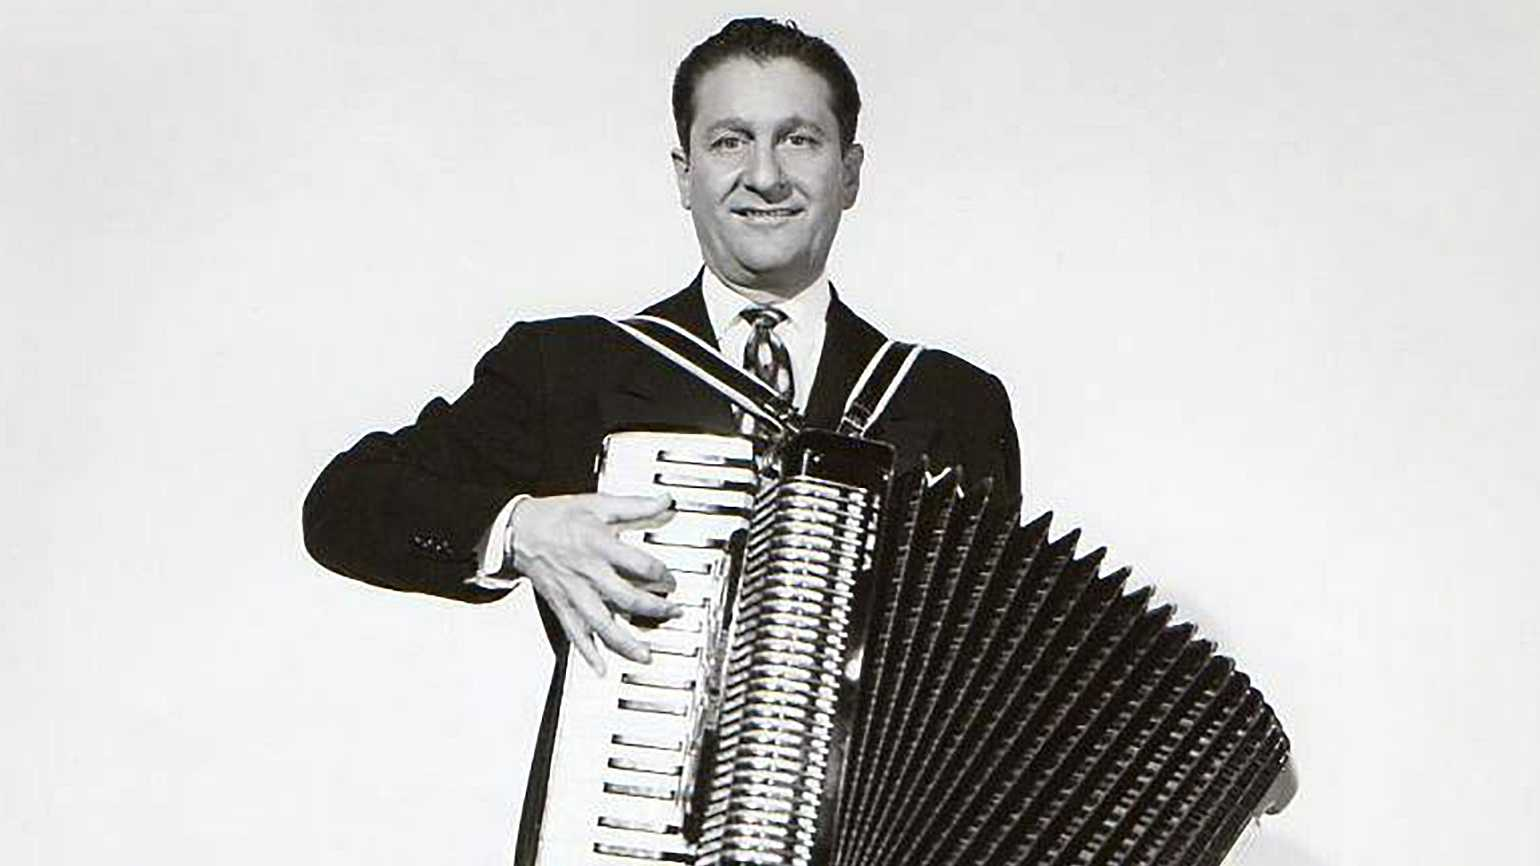 Lawrence Welk with his accordian